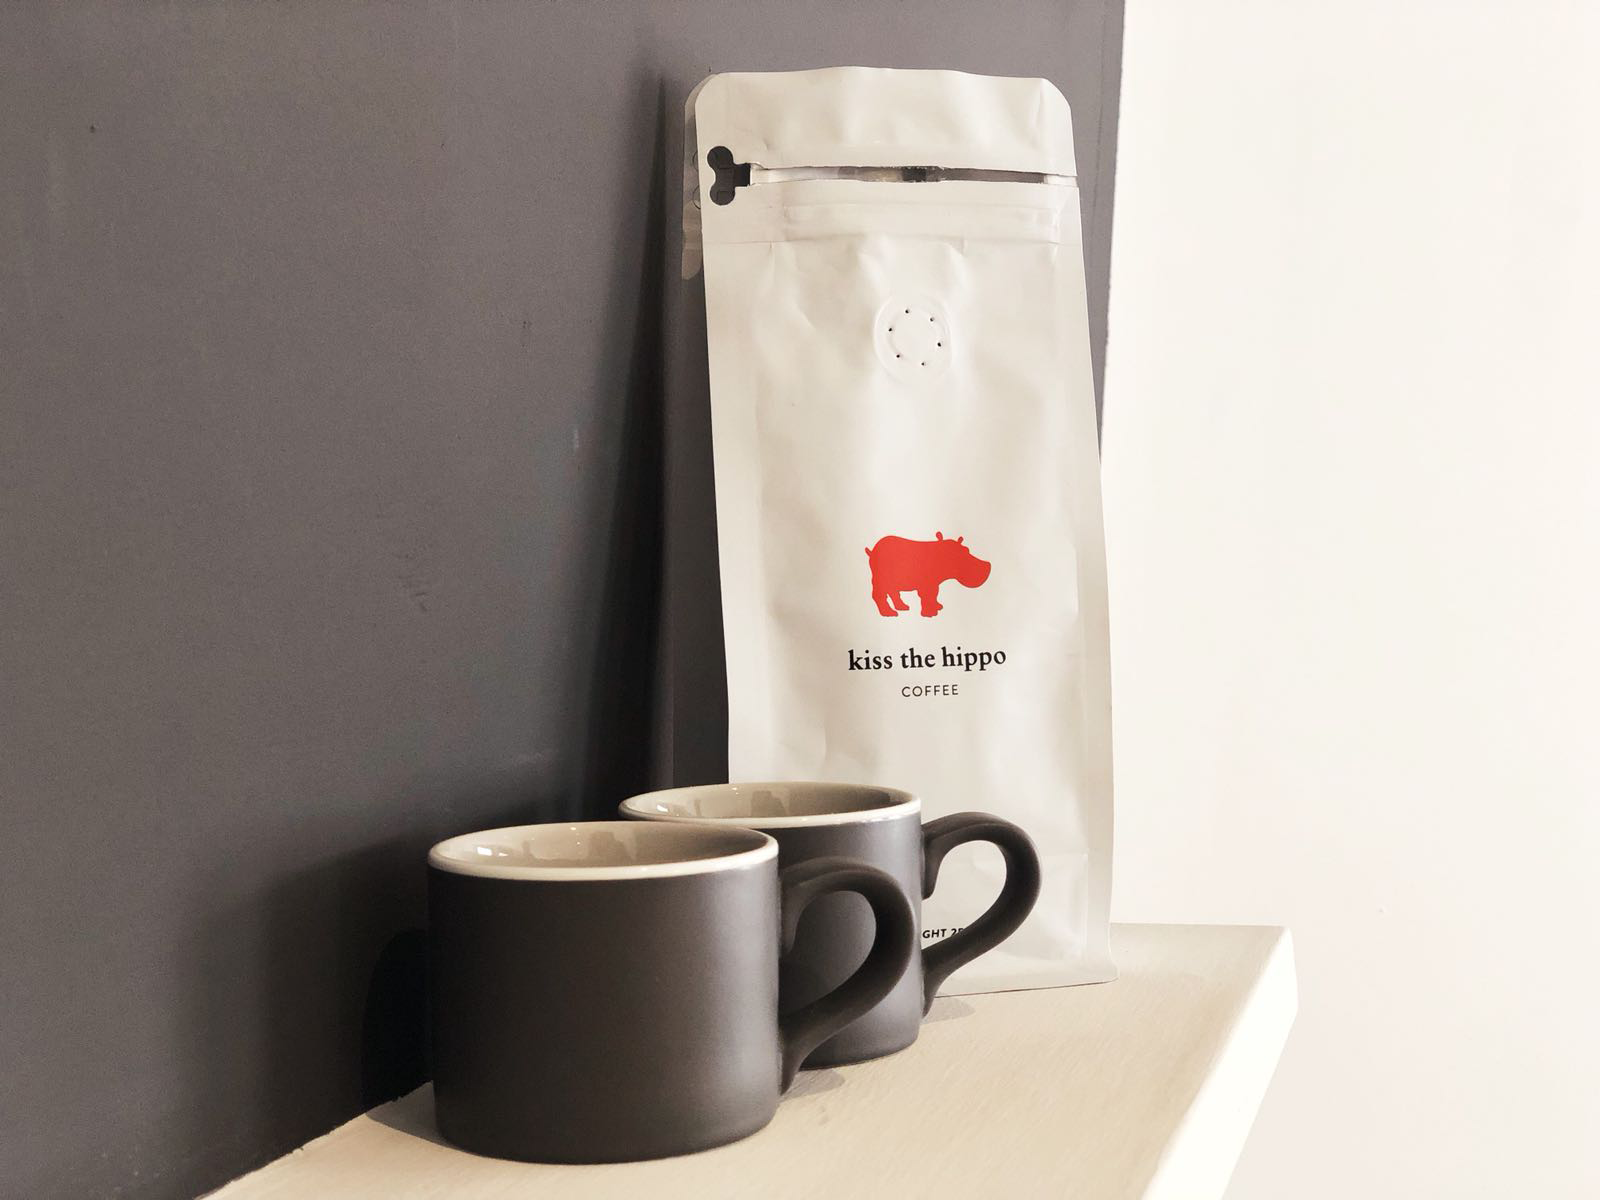 Kiss the Hippo Coffee is coming to Richmond's George Street